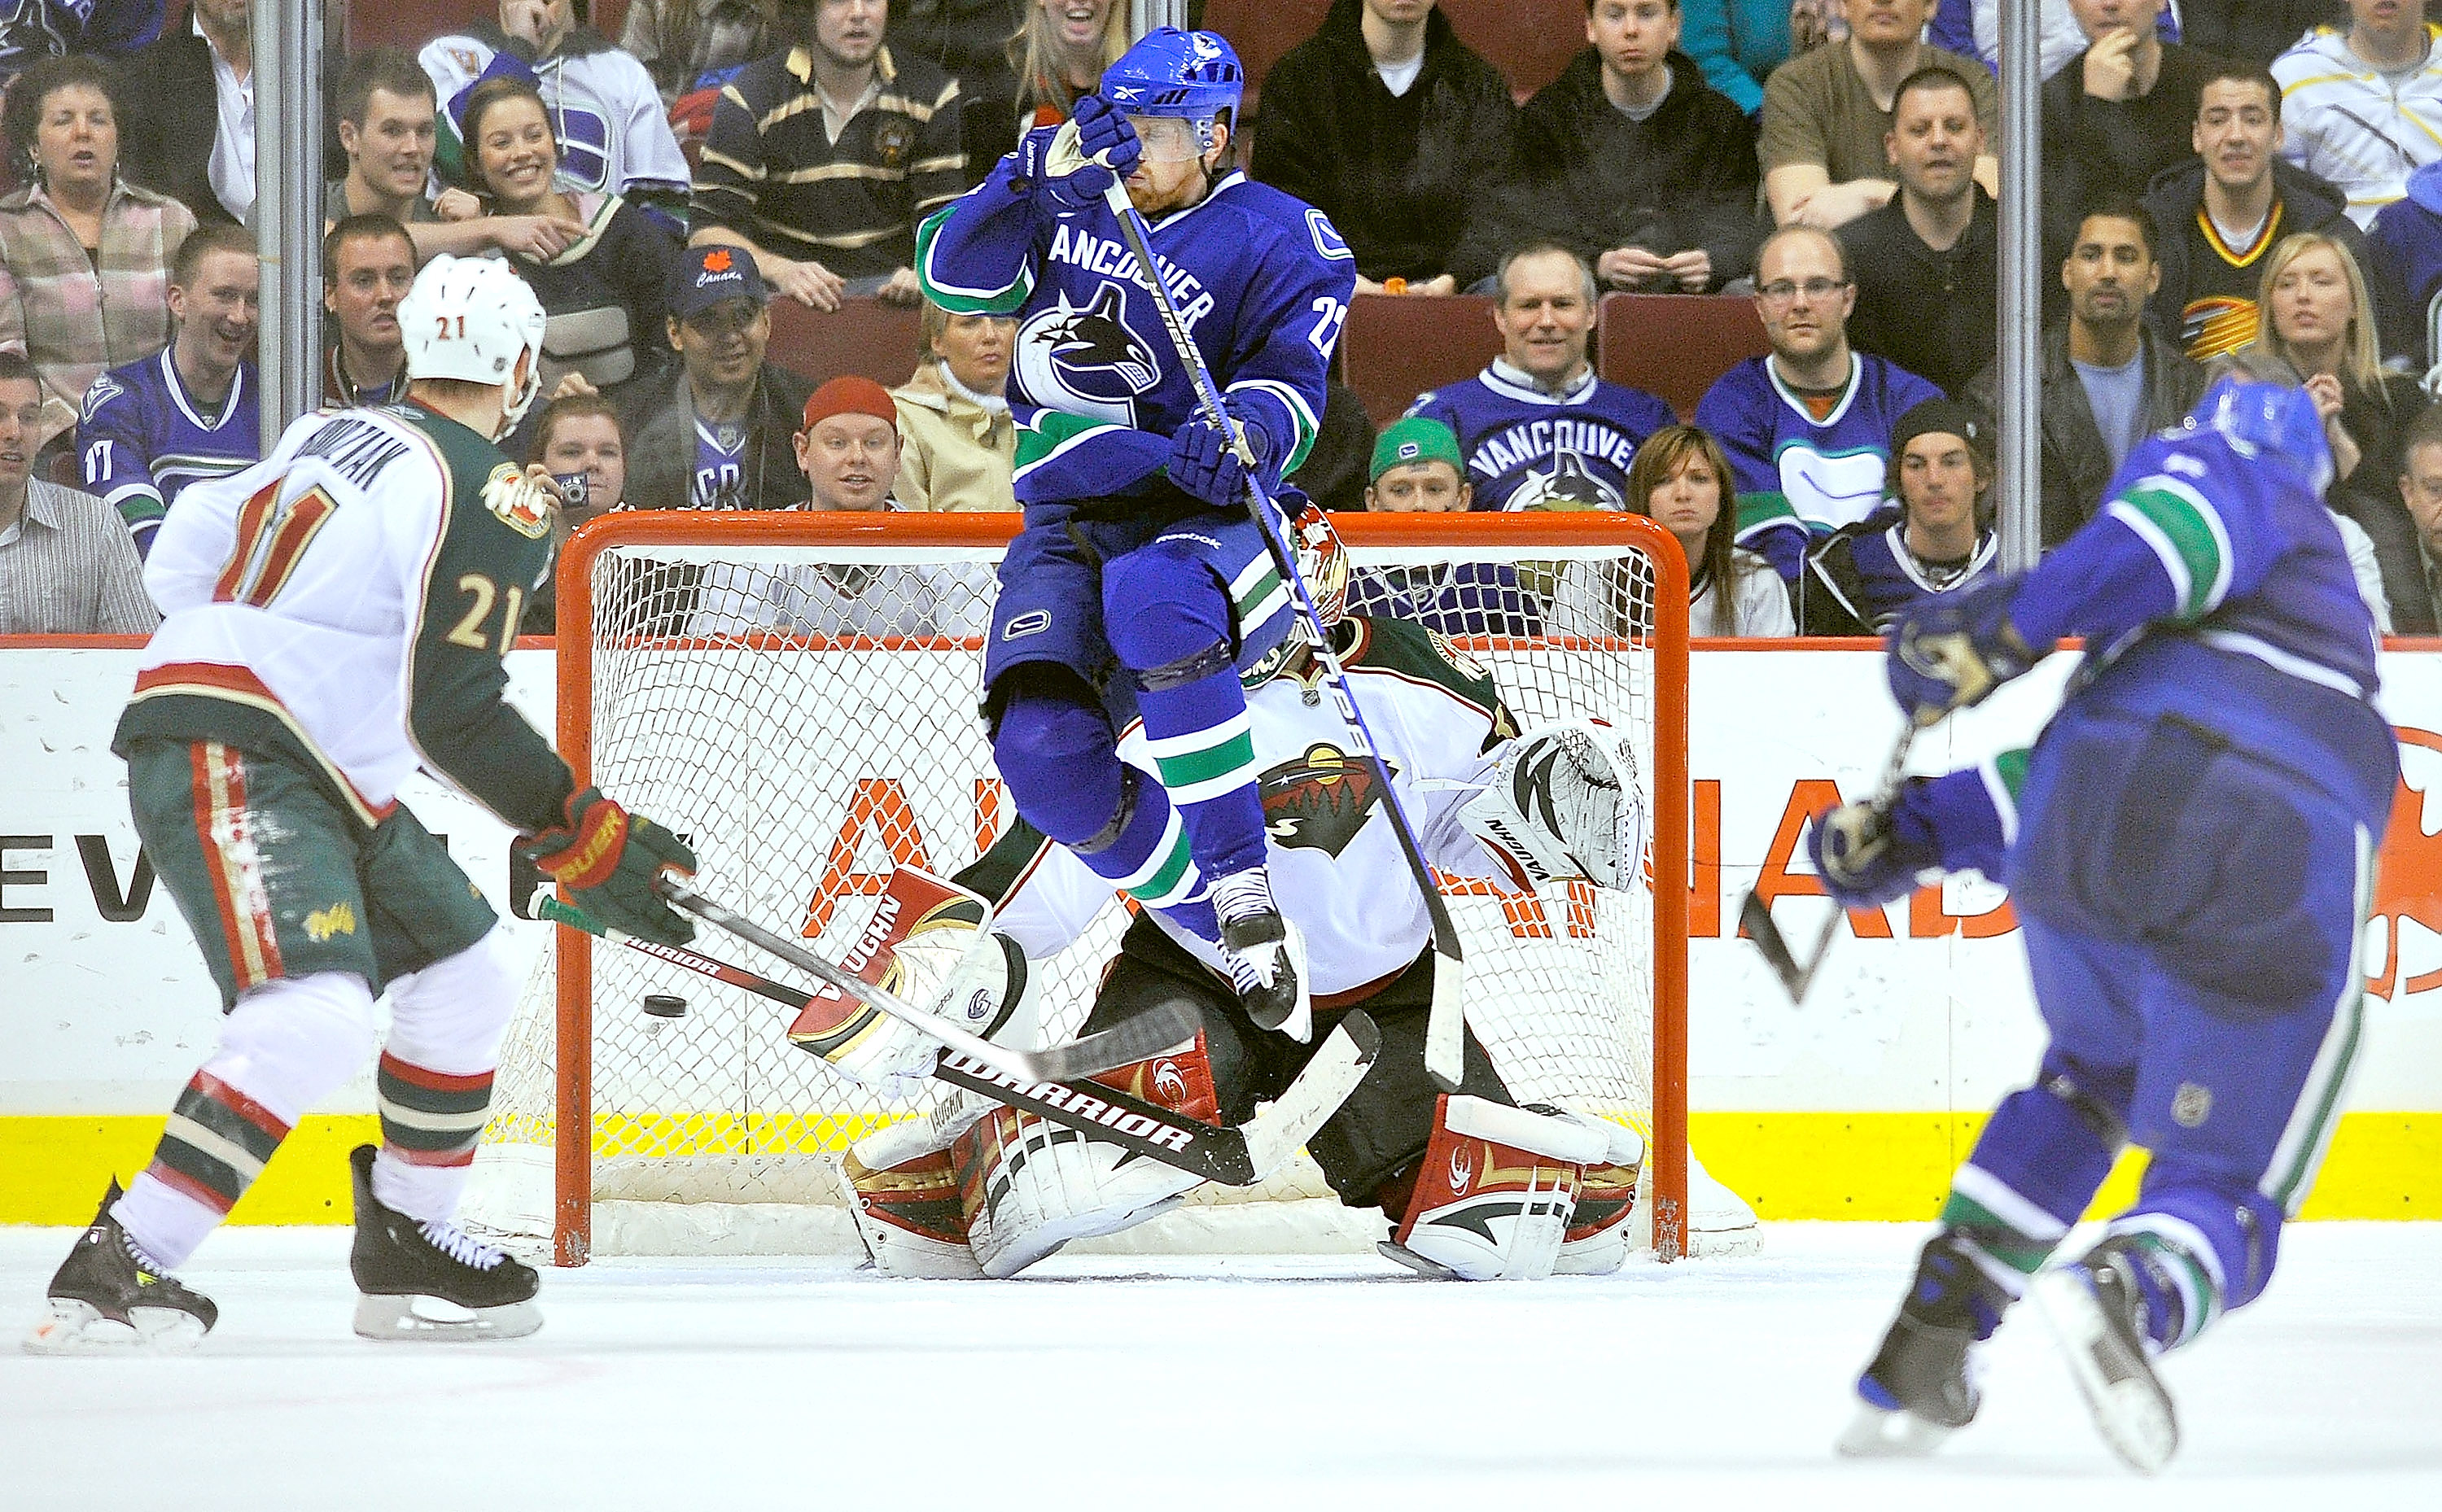 VANCOUVER, CANADA - APRIL 4: Daniel Sedin #22 of the Vancouver Canucks jumps out of the way of teammate Sami Salo's #6 shot as it find the back of the net past goalie Niklas Backstrom #32 of the Minnesota Wild during the overtime period of NHL action on A